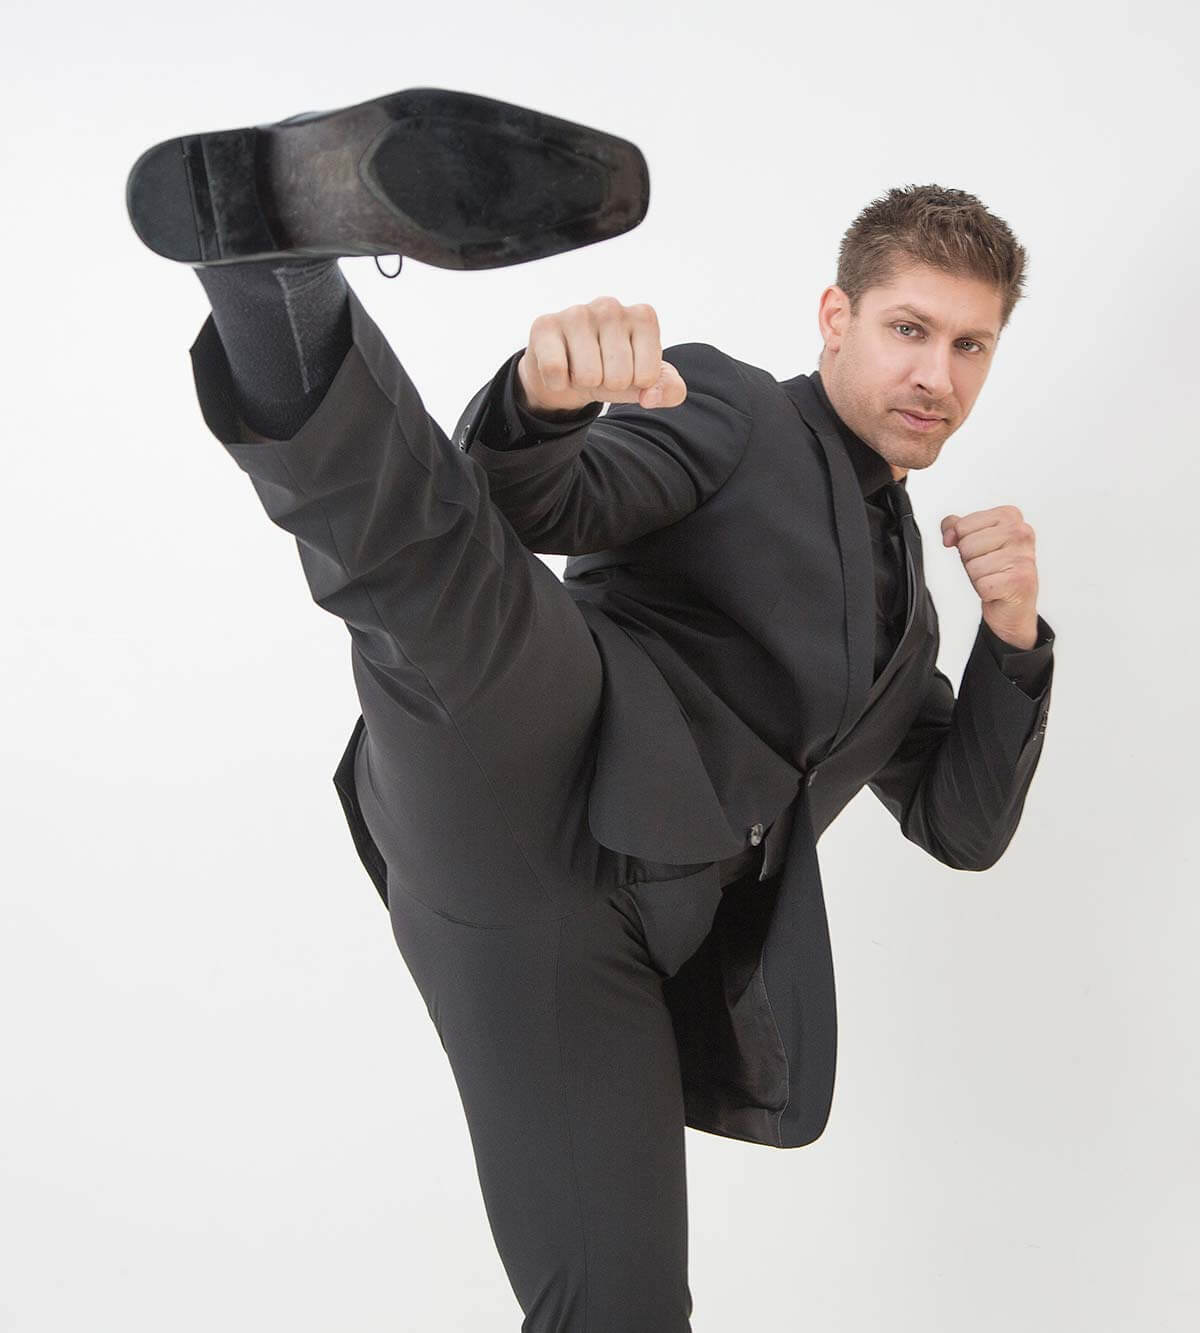 Chillin' with Alain Moussi, high kick in black suit, on white